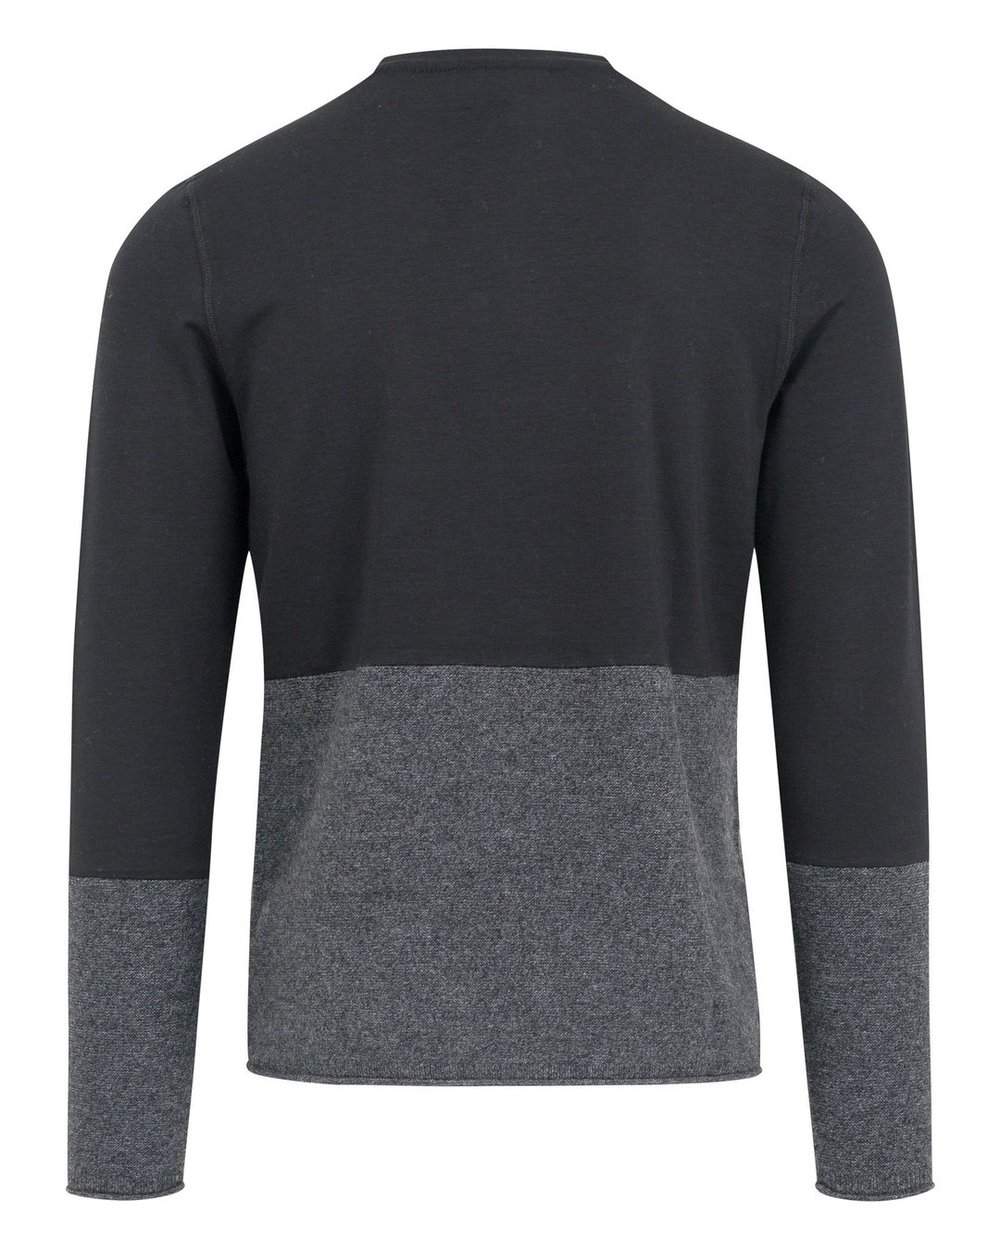 men-musk-mixed-media-crewneck-with-kangaroo-pocket-2_1080x.jpg